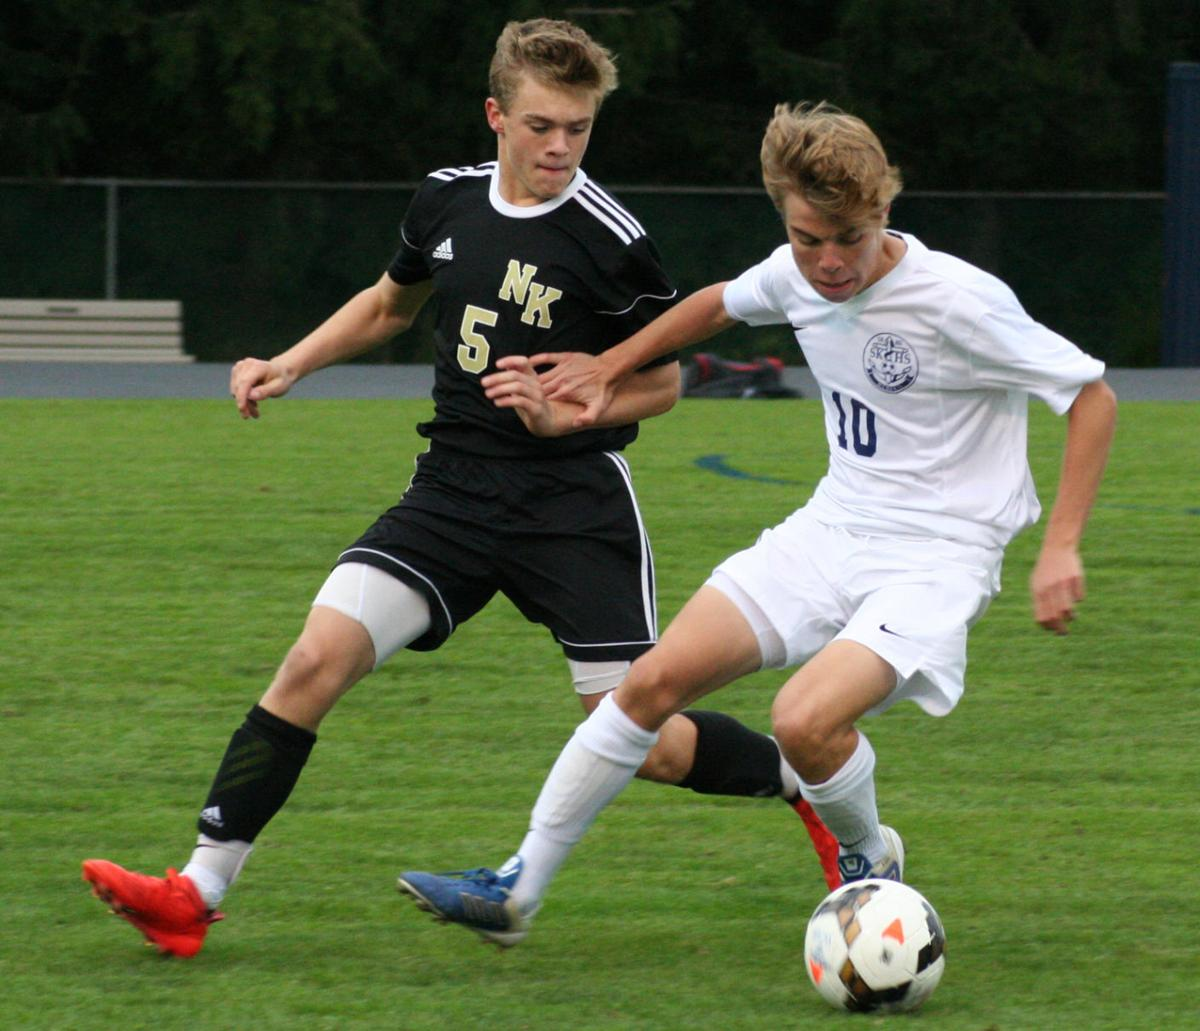 Boys Soccer Preview: Rising stars lead Skippers | Sports | independentri.com